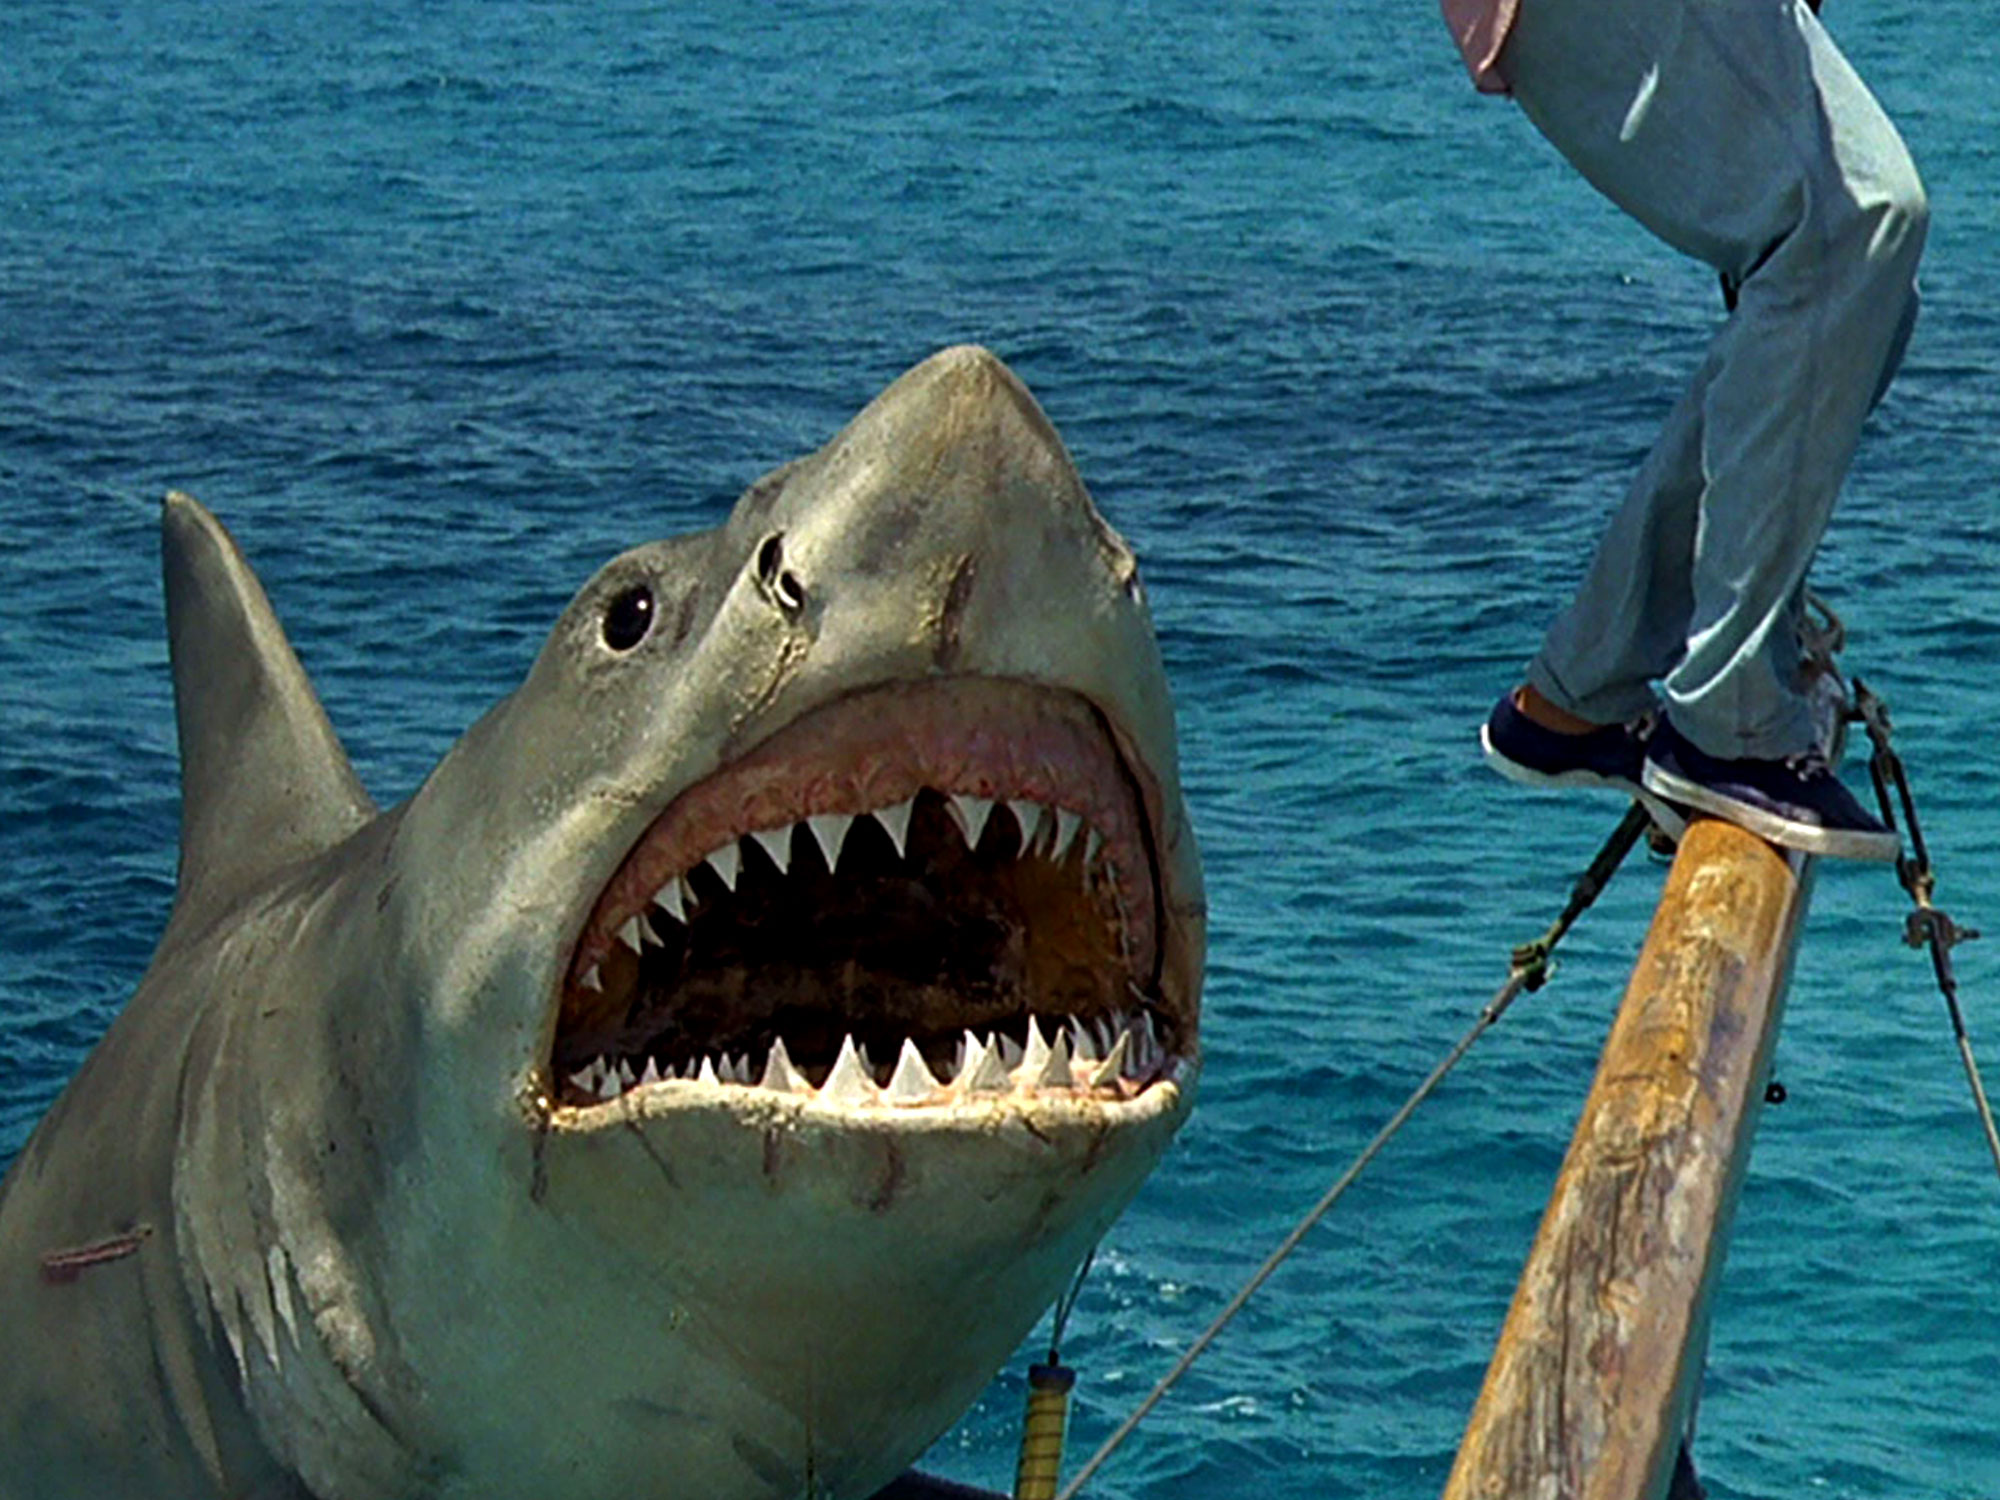 In defence of Jaws: The Revenge